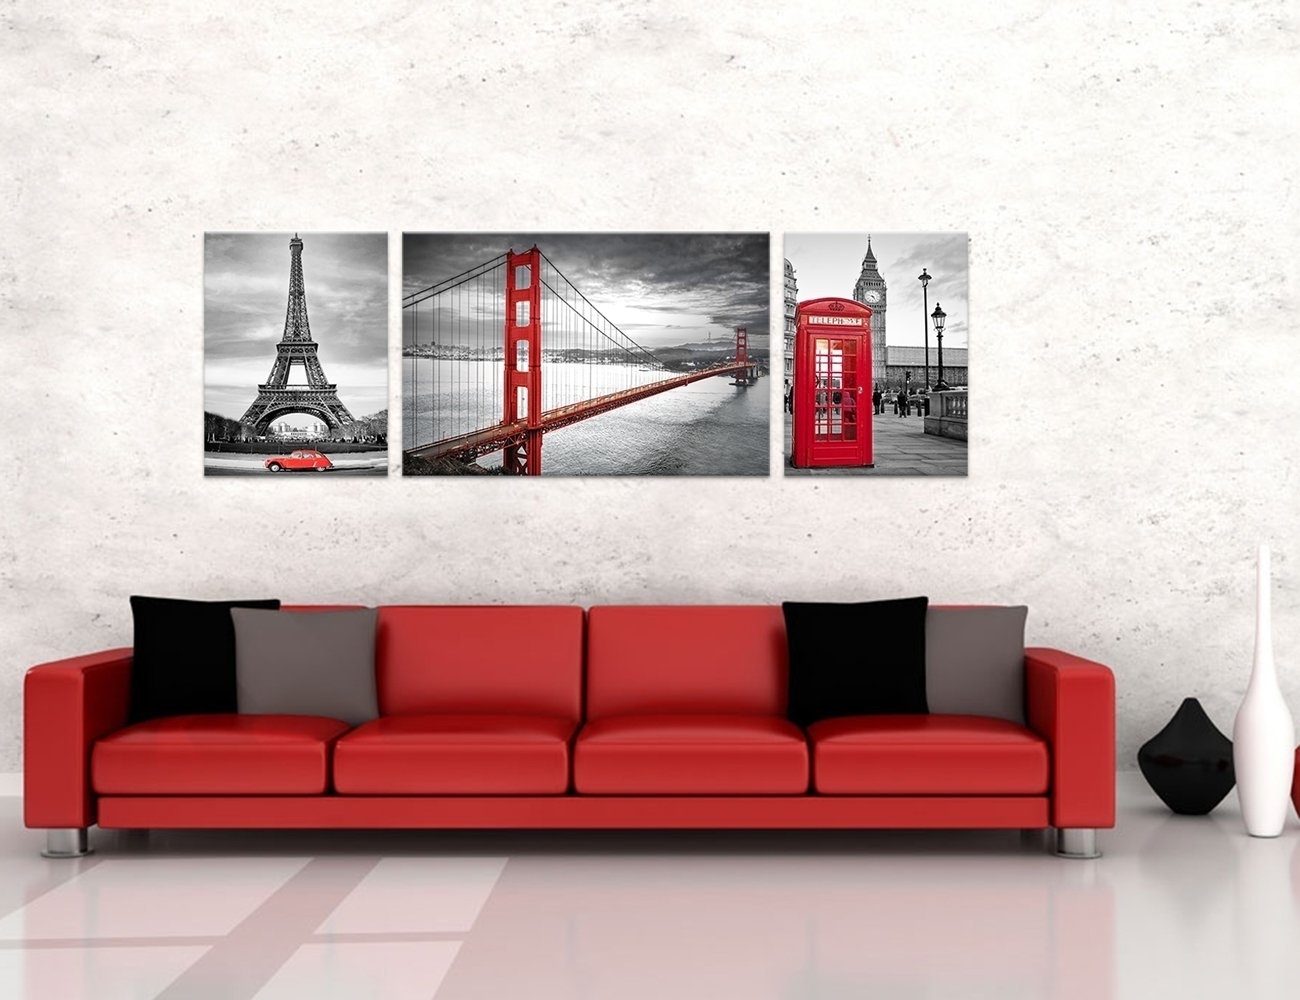 San Francisco Wall Art – Amthuchanoi Intended For Current San Francisco Wall Art (View 15 of 20)